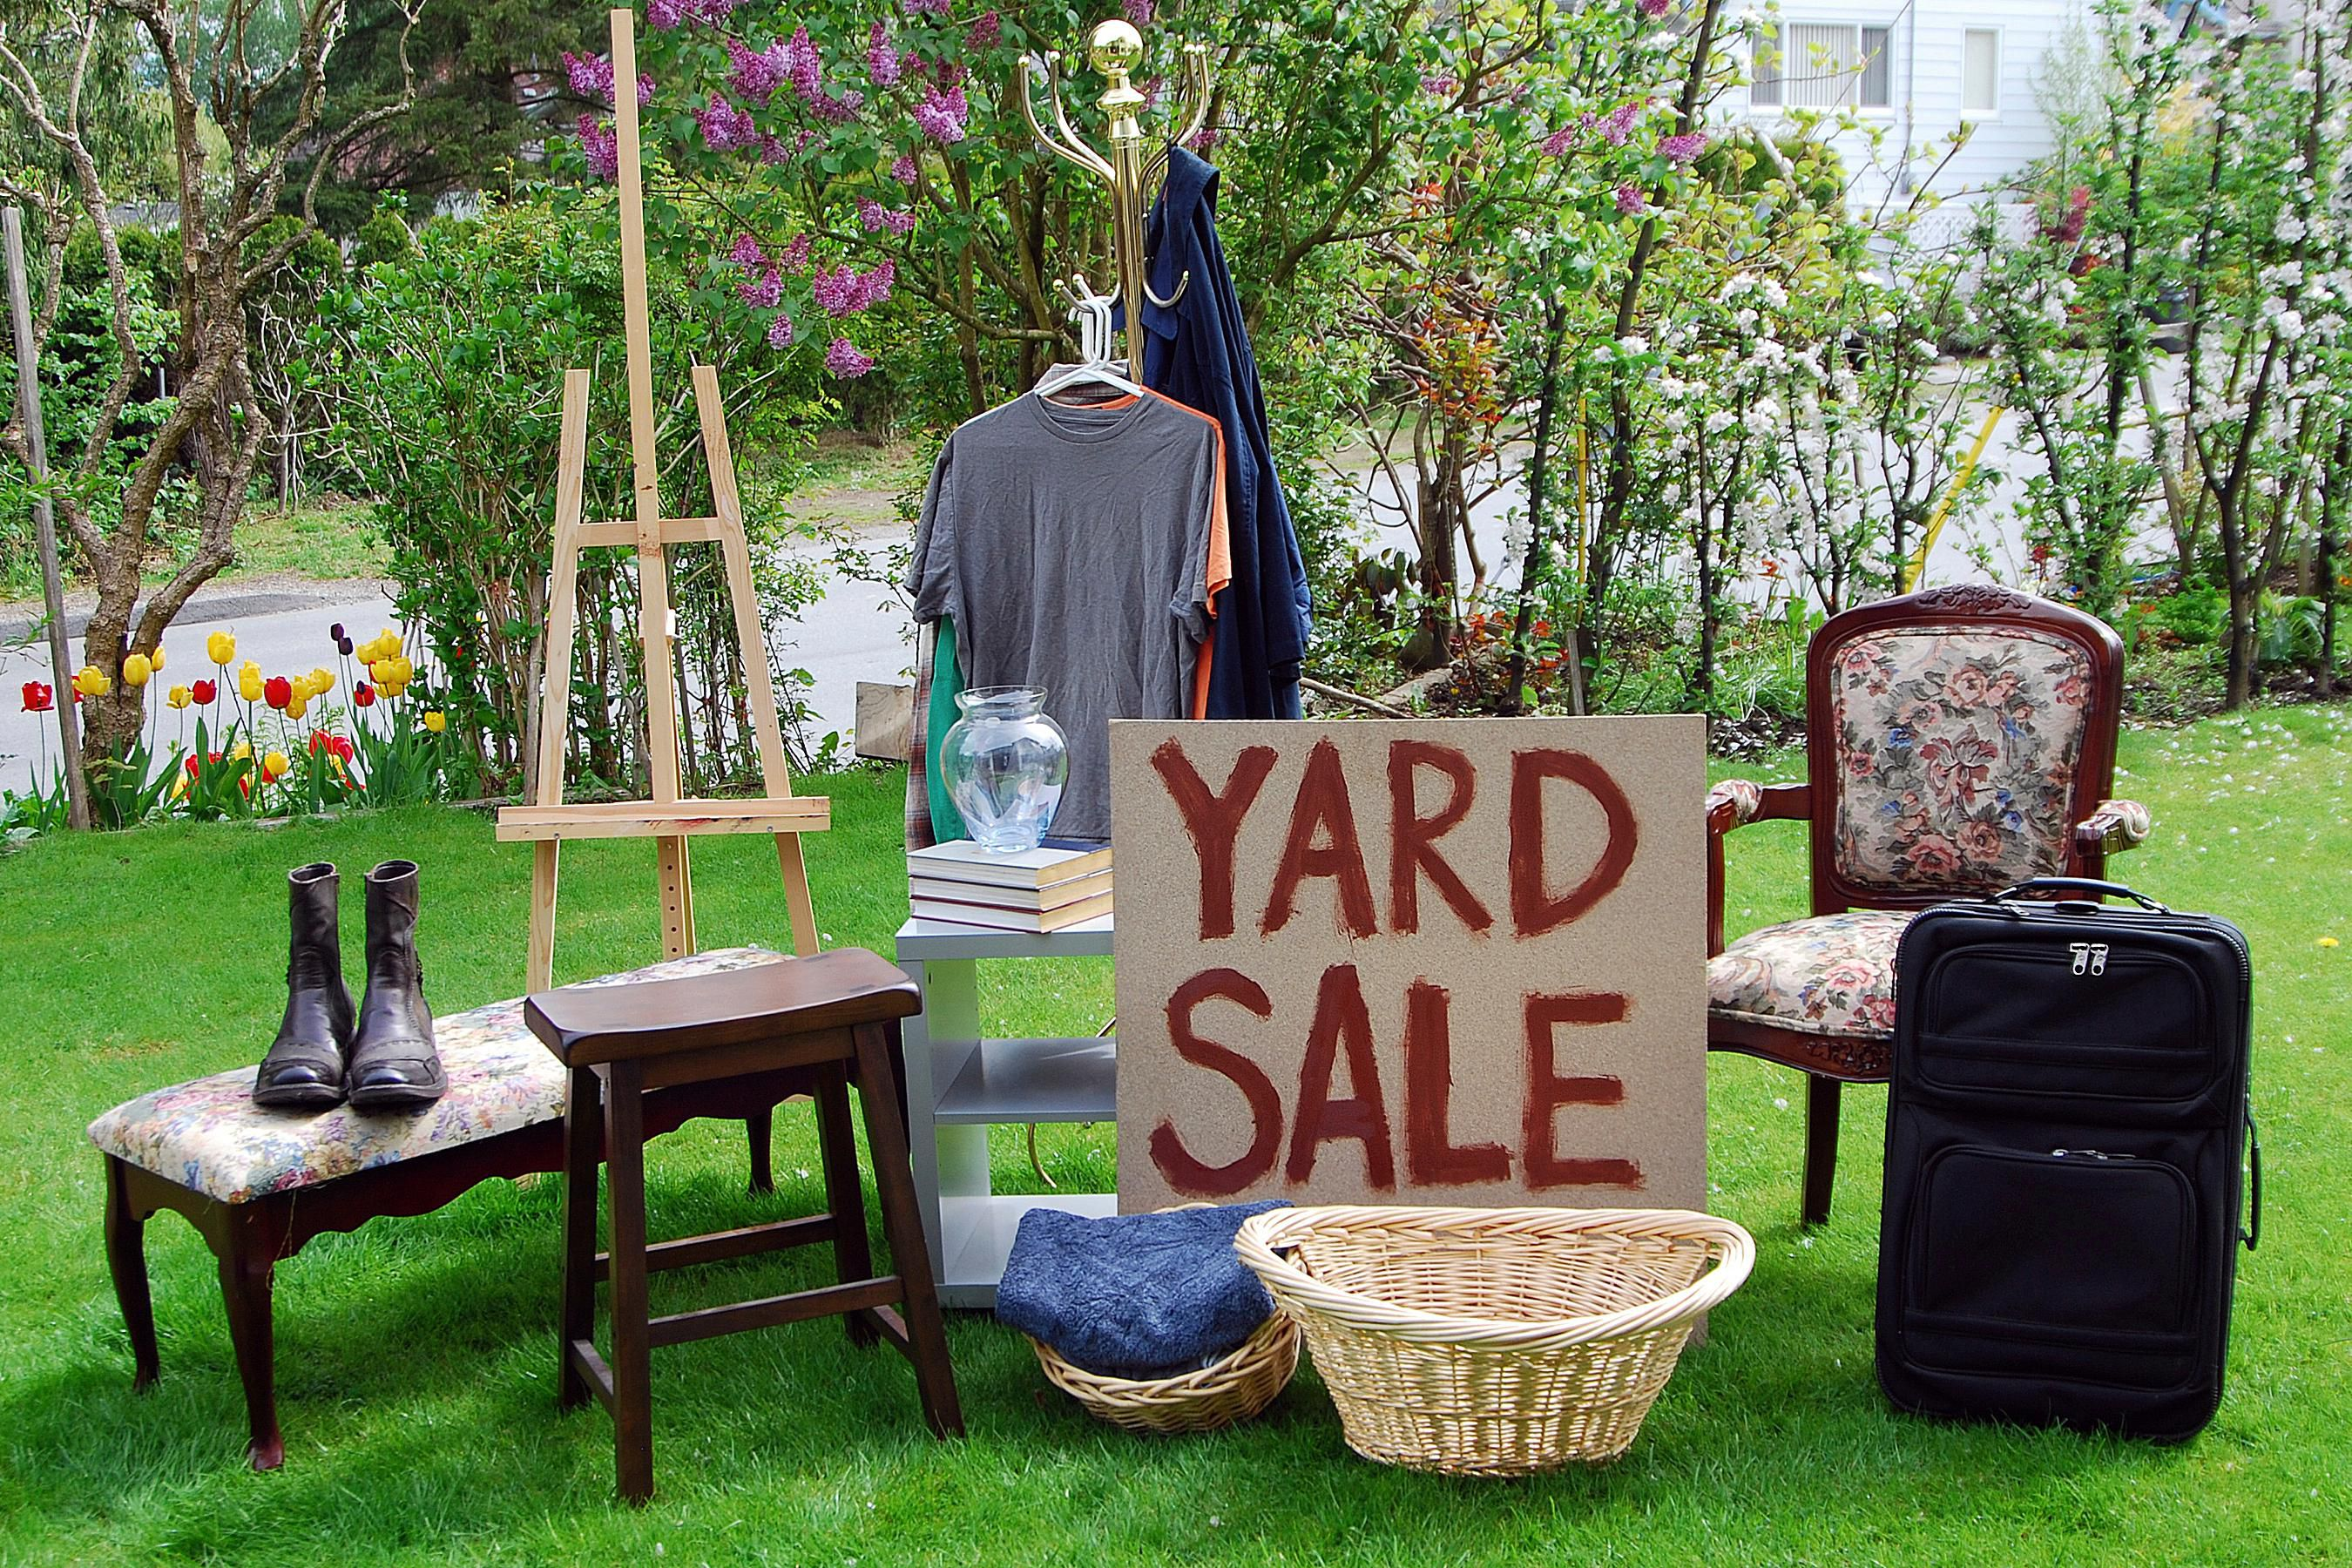 citywide garage sales and highway yard sales by month